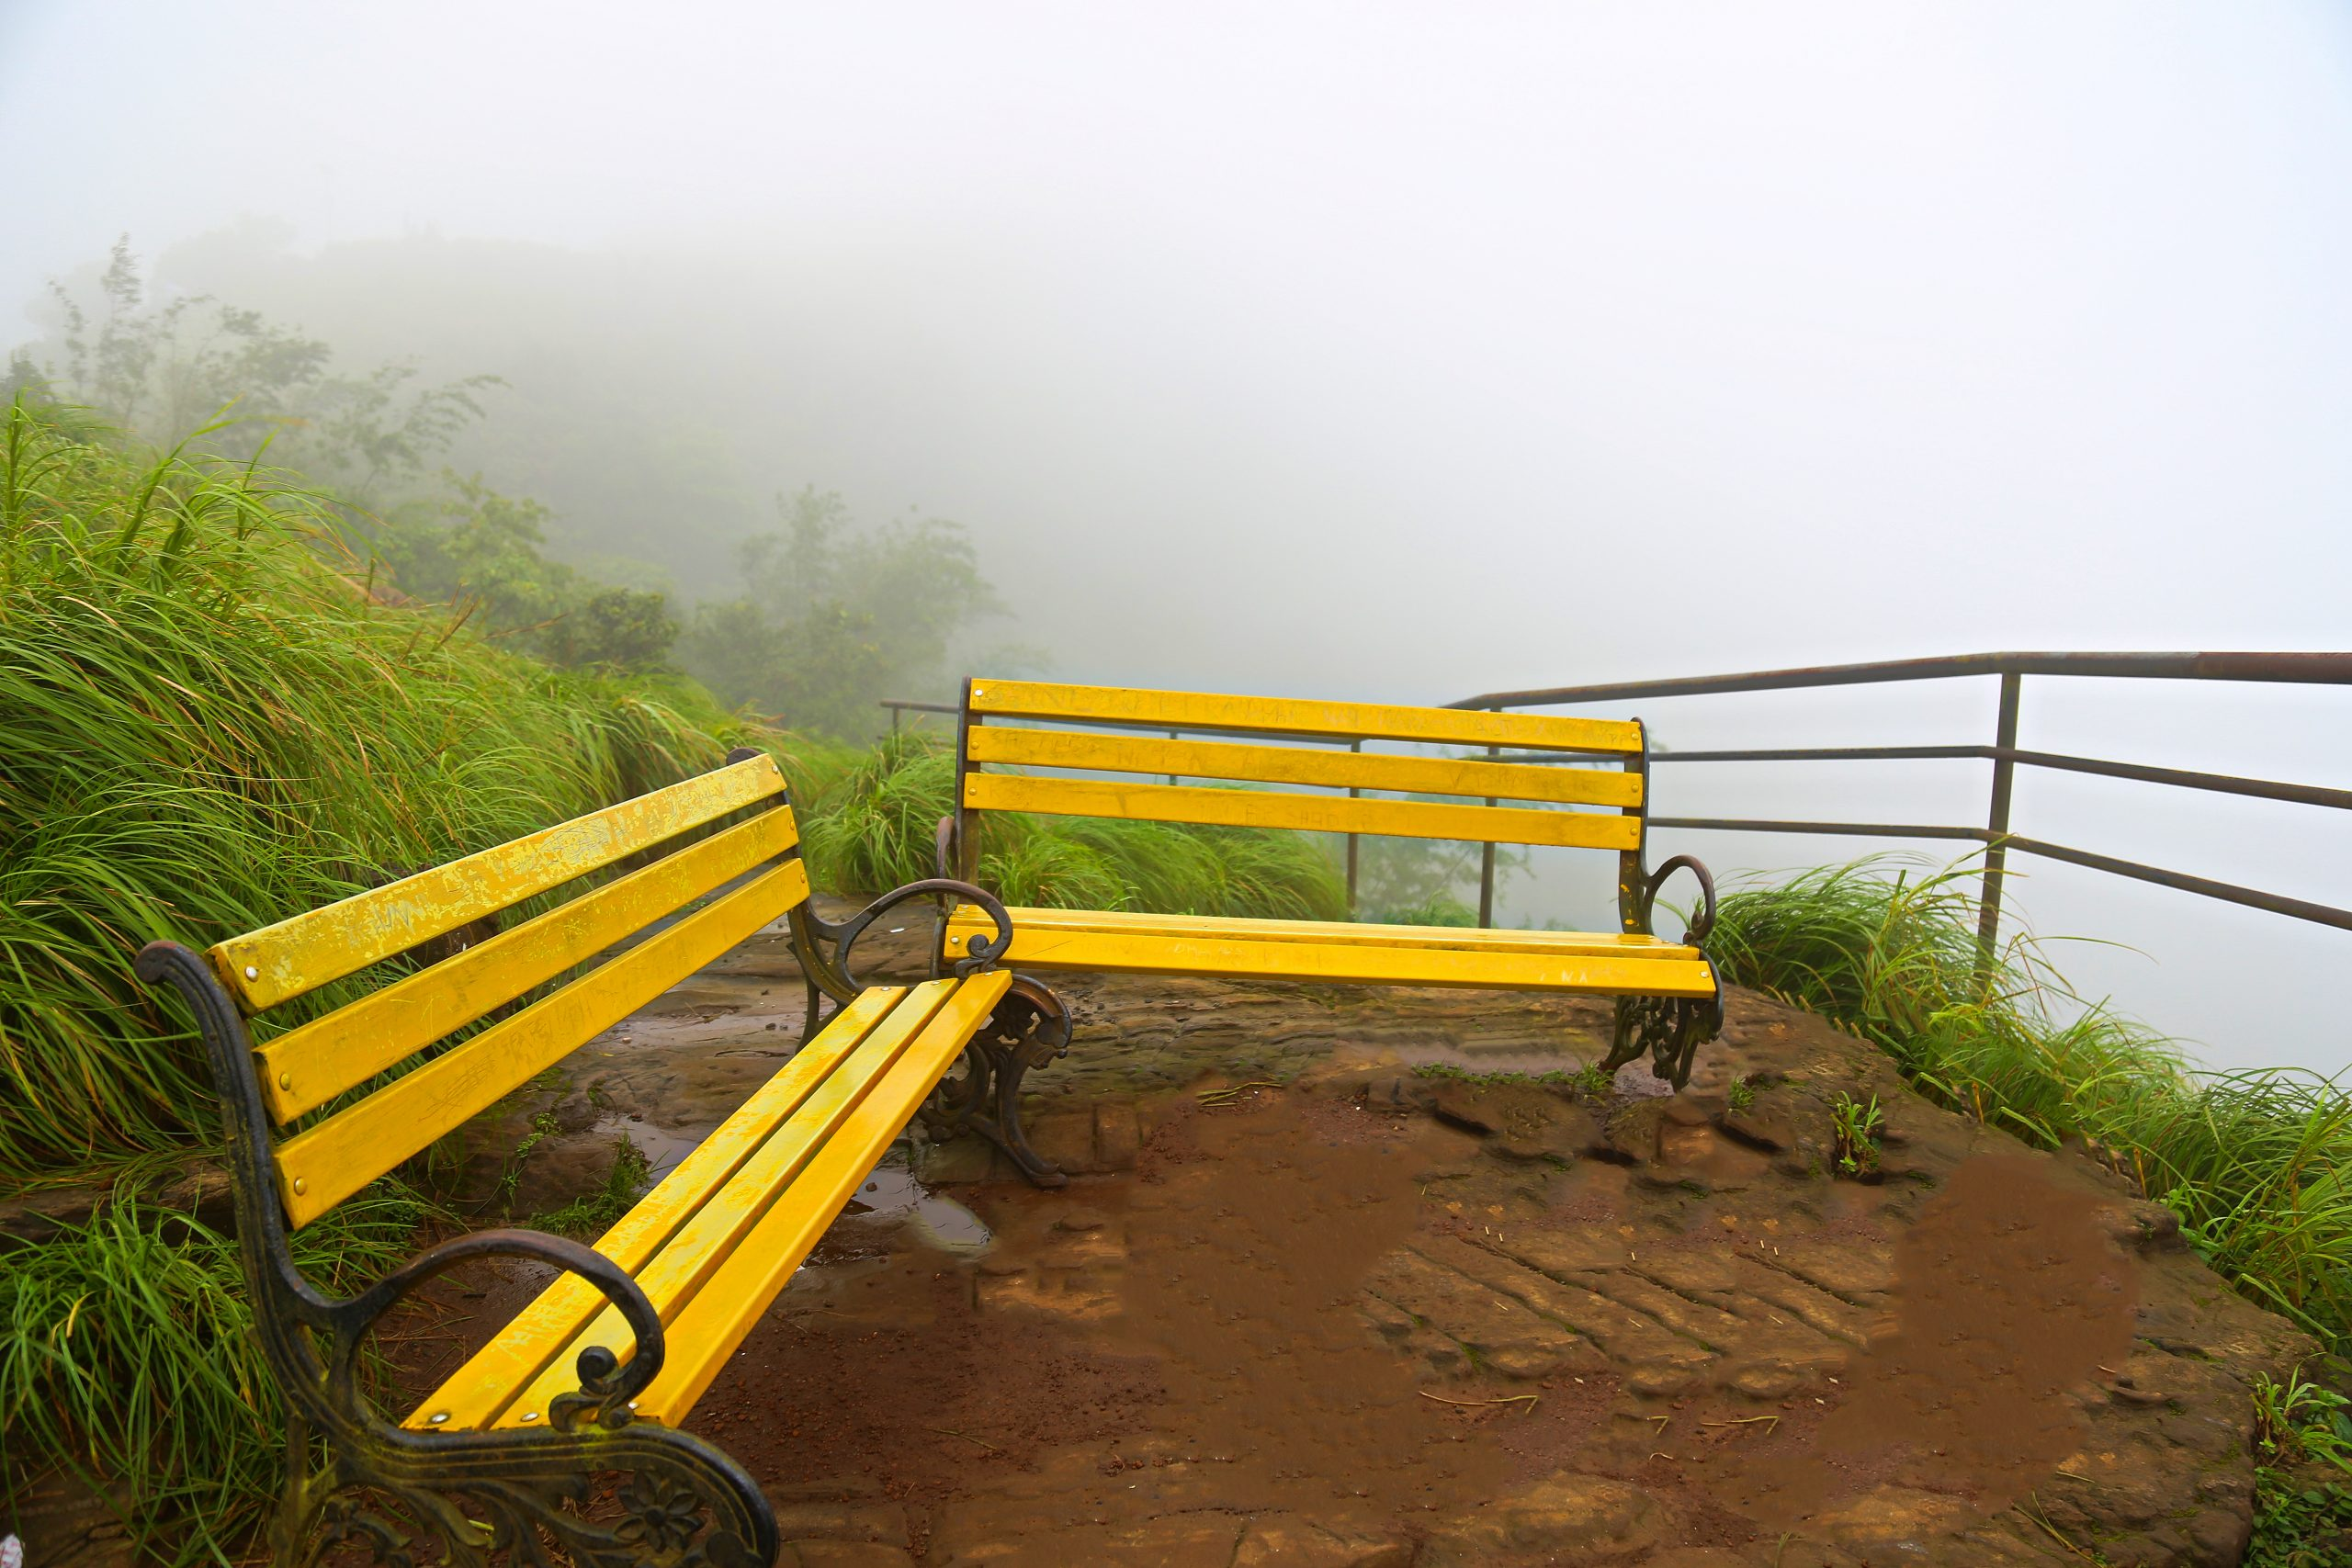 Rest bench at a hill station